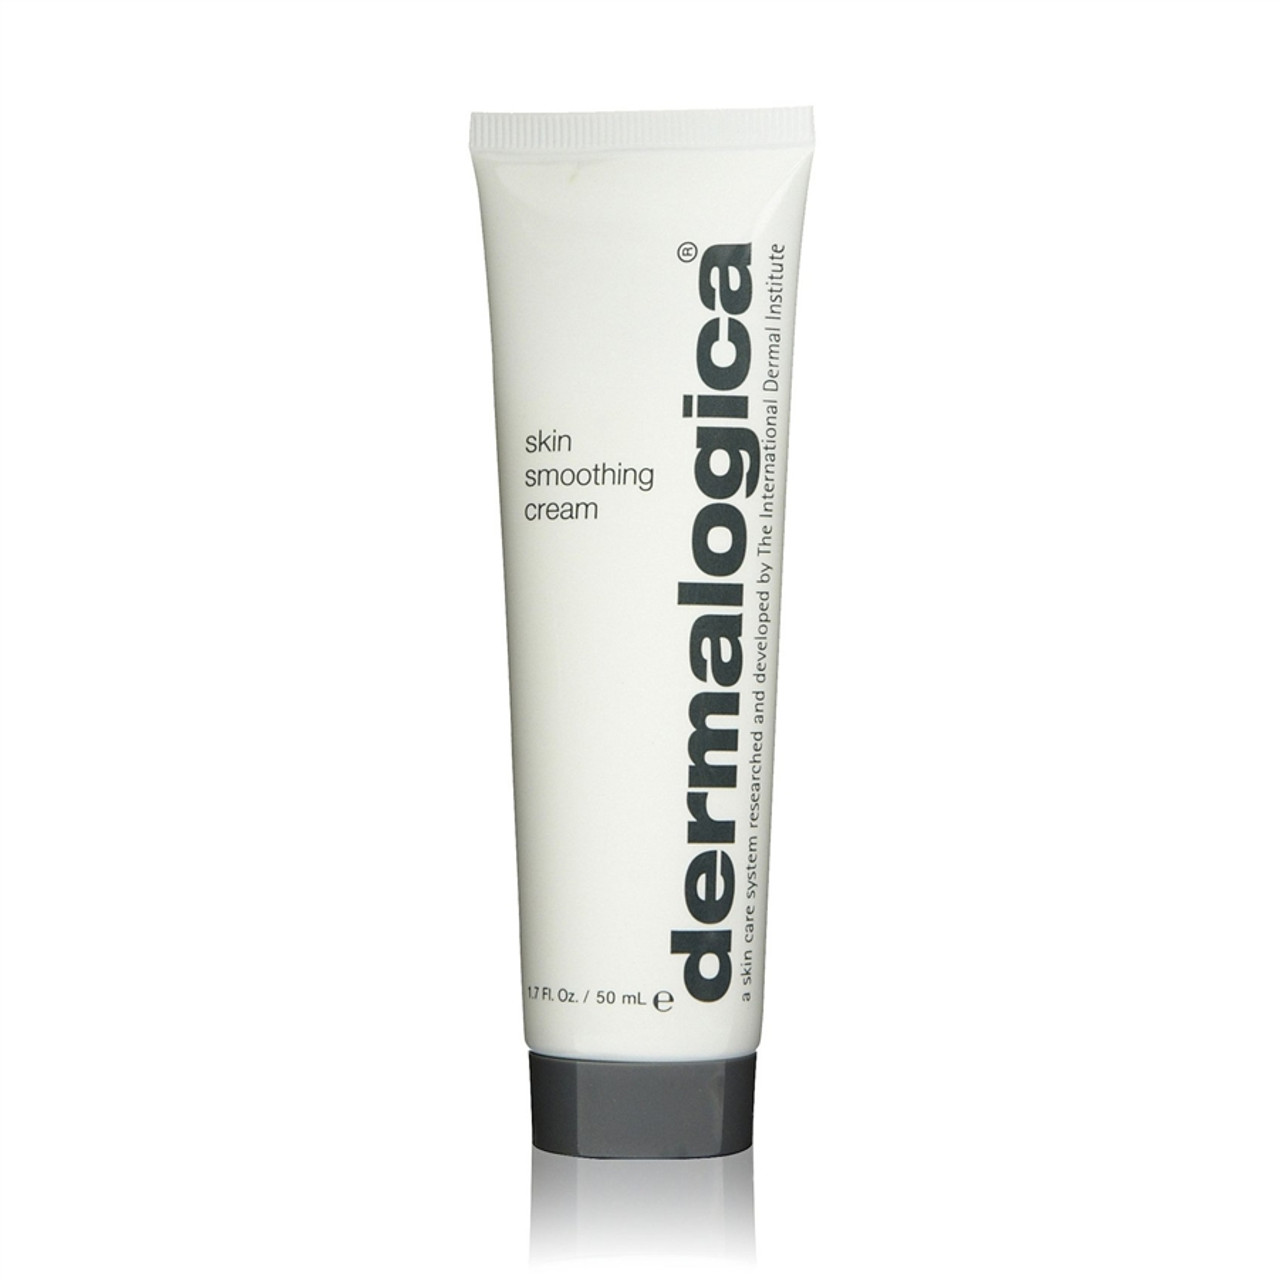 Dermalogica Skin Smoothing Cream - 1.7 OZ